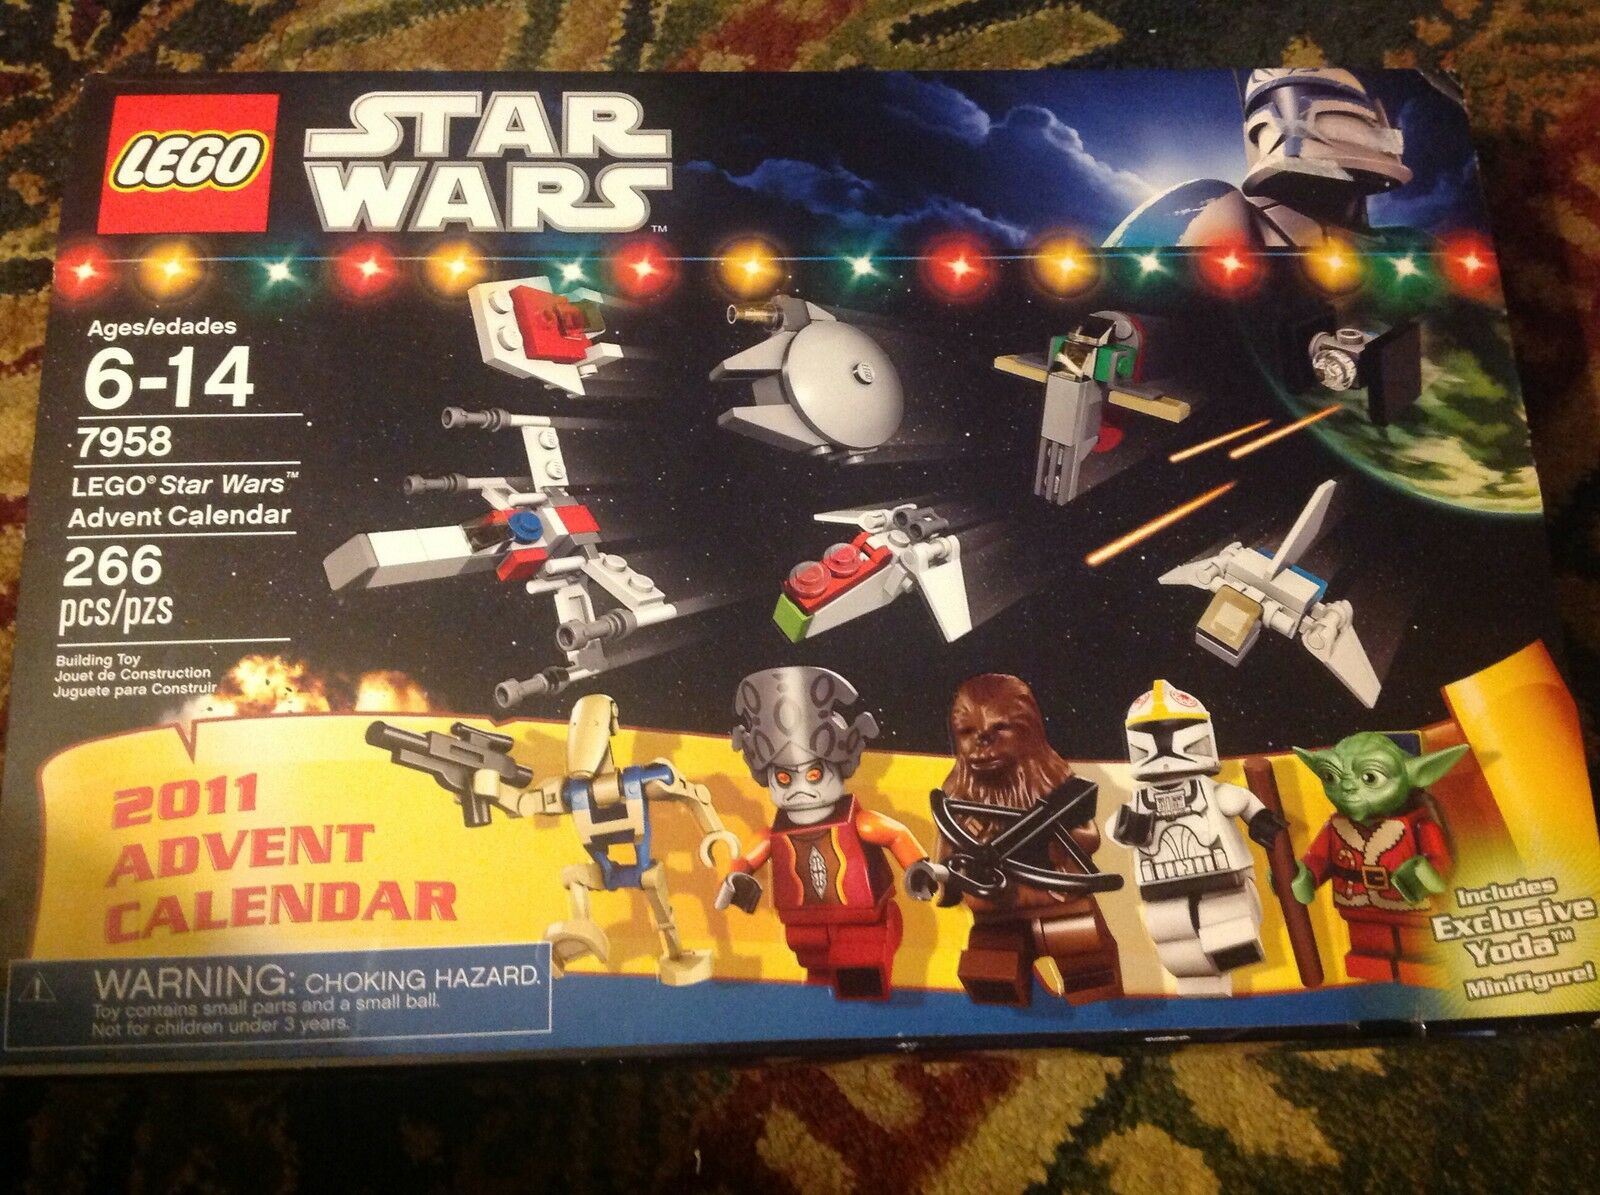 Nuovo in box Lego Star Wars Advent Calendar, 7958.  Complete, figures unopened